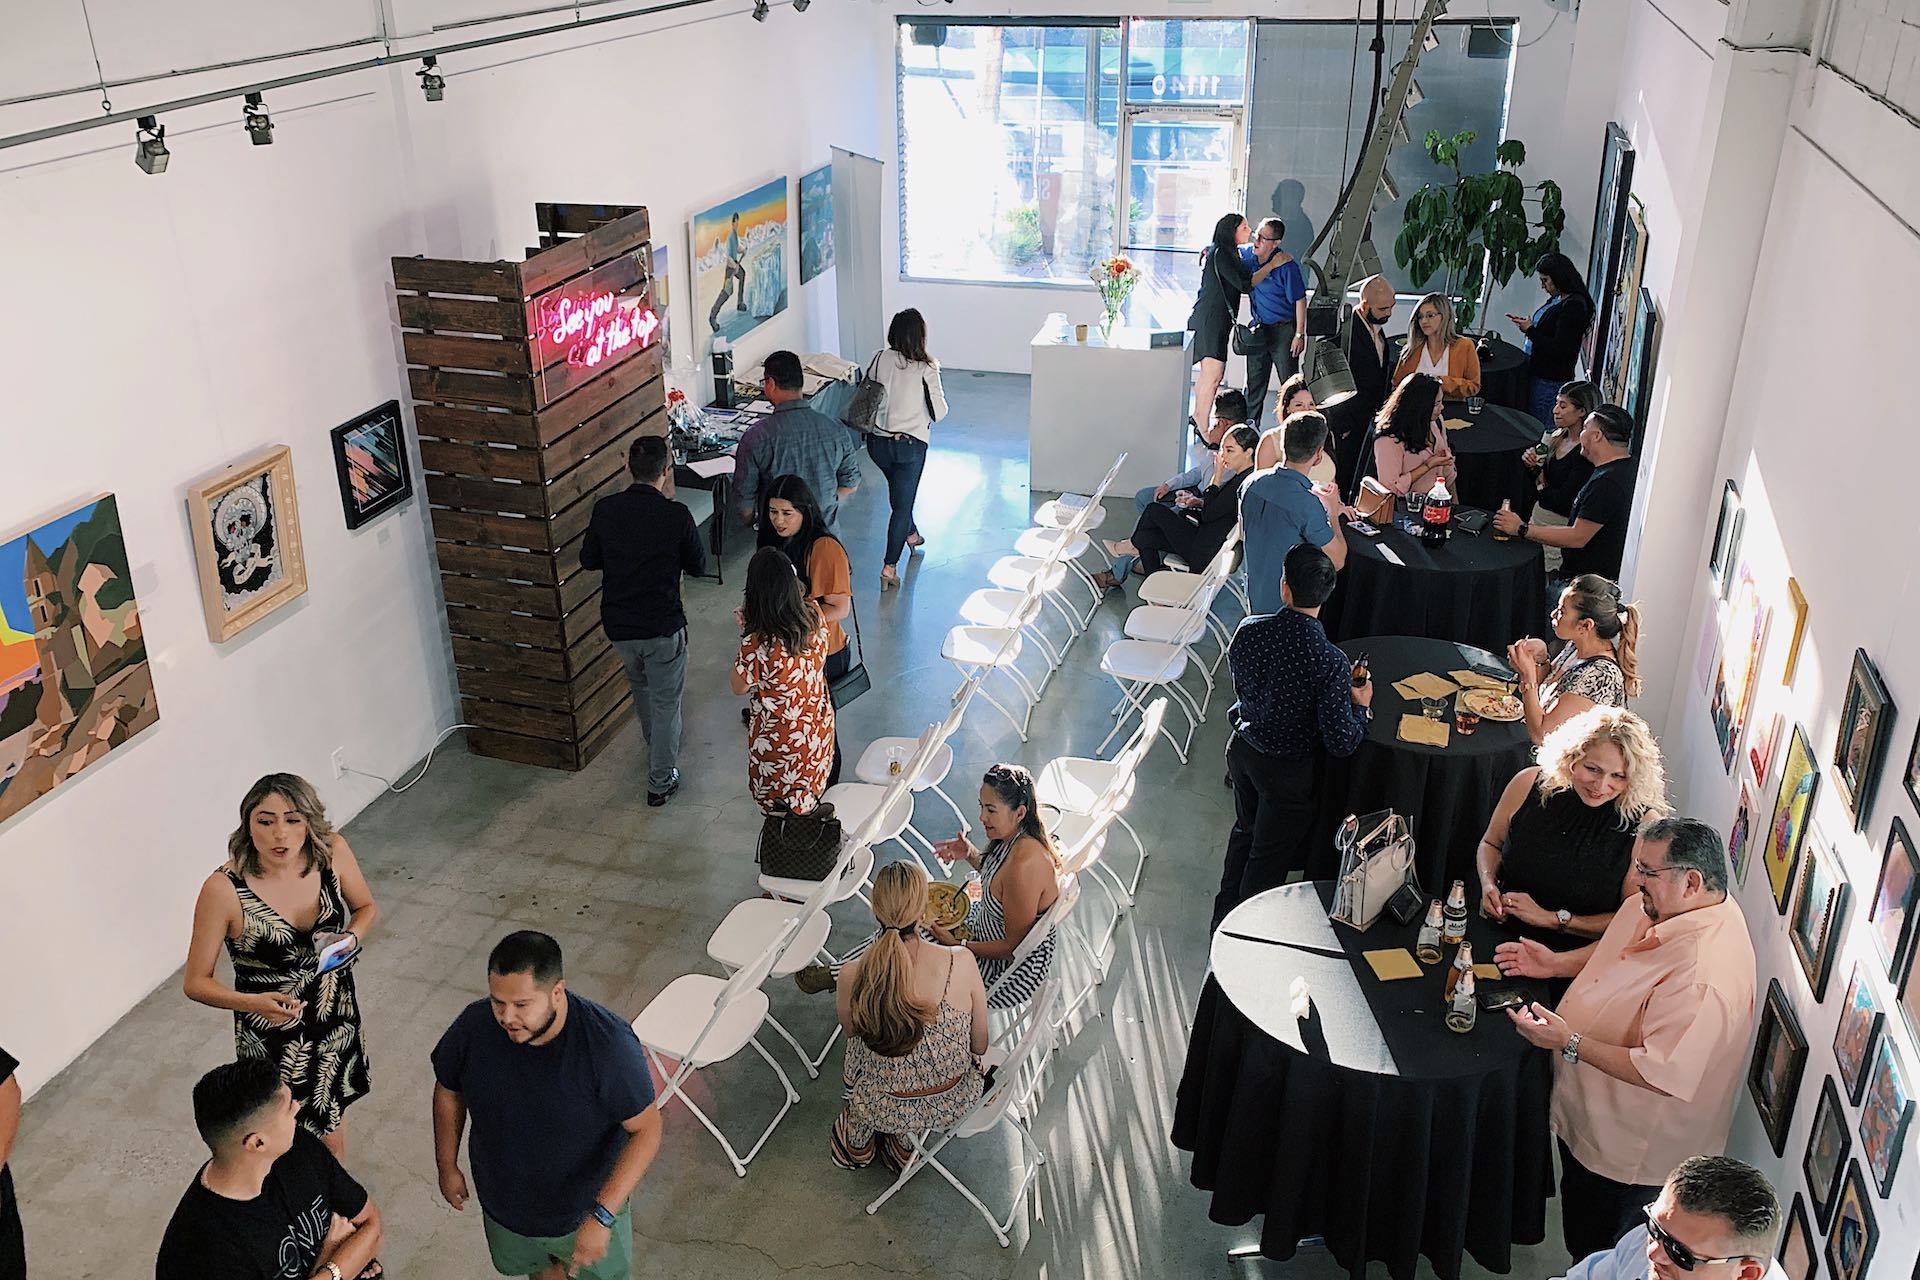 stay-gallery-space-use-private-events.jpg